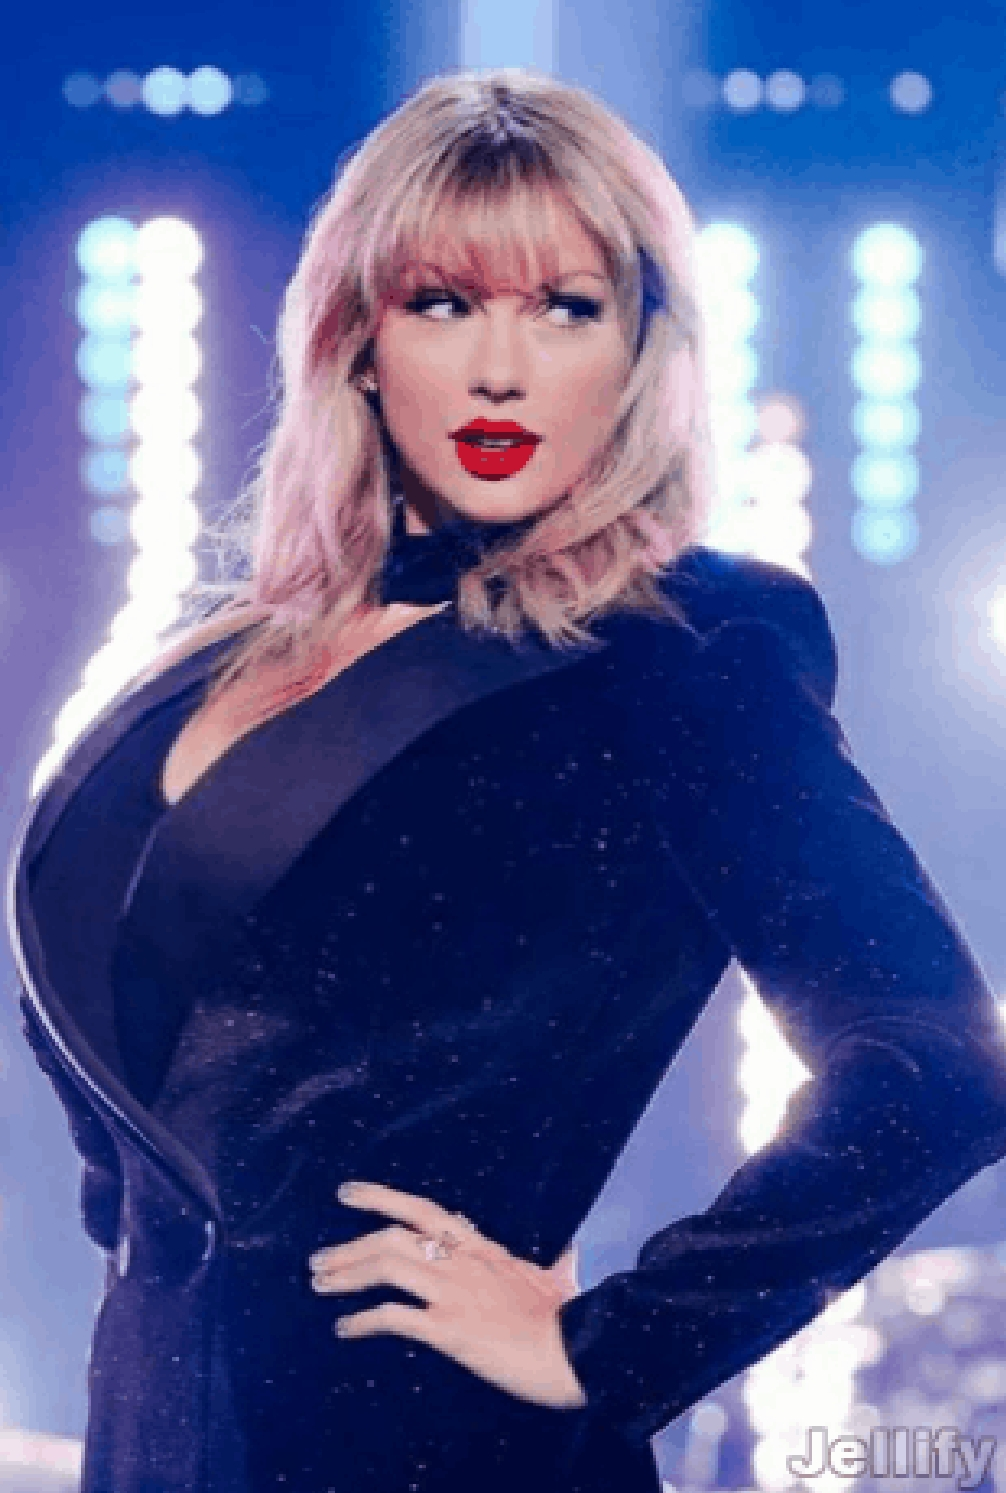 Taylor Swift Breast Expansion By Paulscowboys On Deviantart